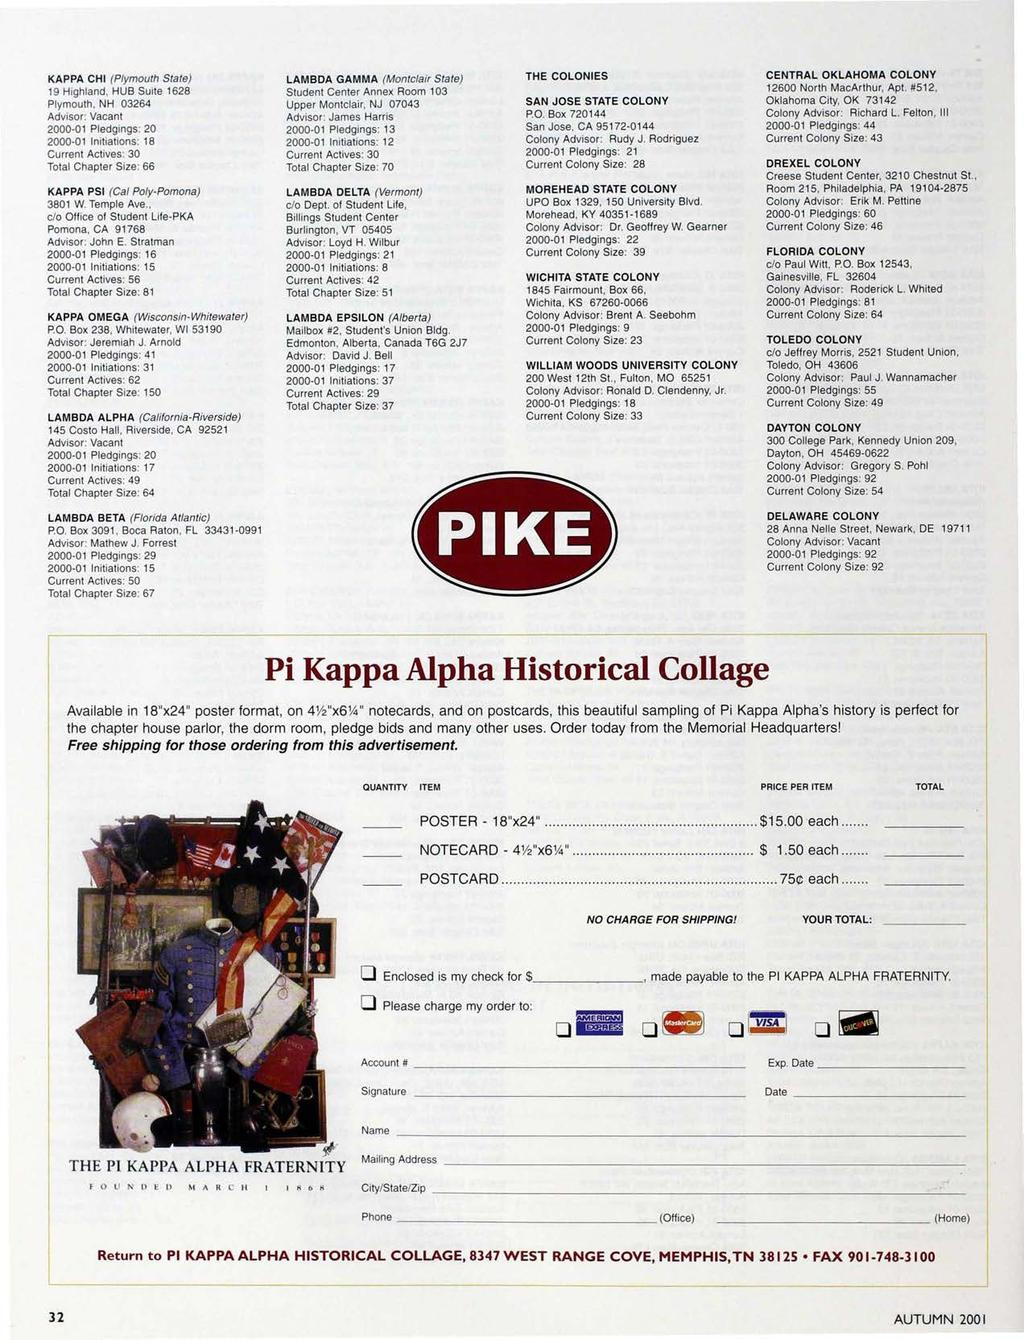 KAPPA CHI (Plymouth State) 19 Highland, HUB Suite 1628 Plymouth, NH 03264 Advisor: Vacant 2000-01 Pledgings: 20 2000-01 Initiations: 18 Current Actives: 30 Total Chapter Size: 66 KAPPA PSI (Cal